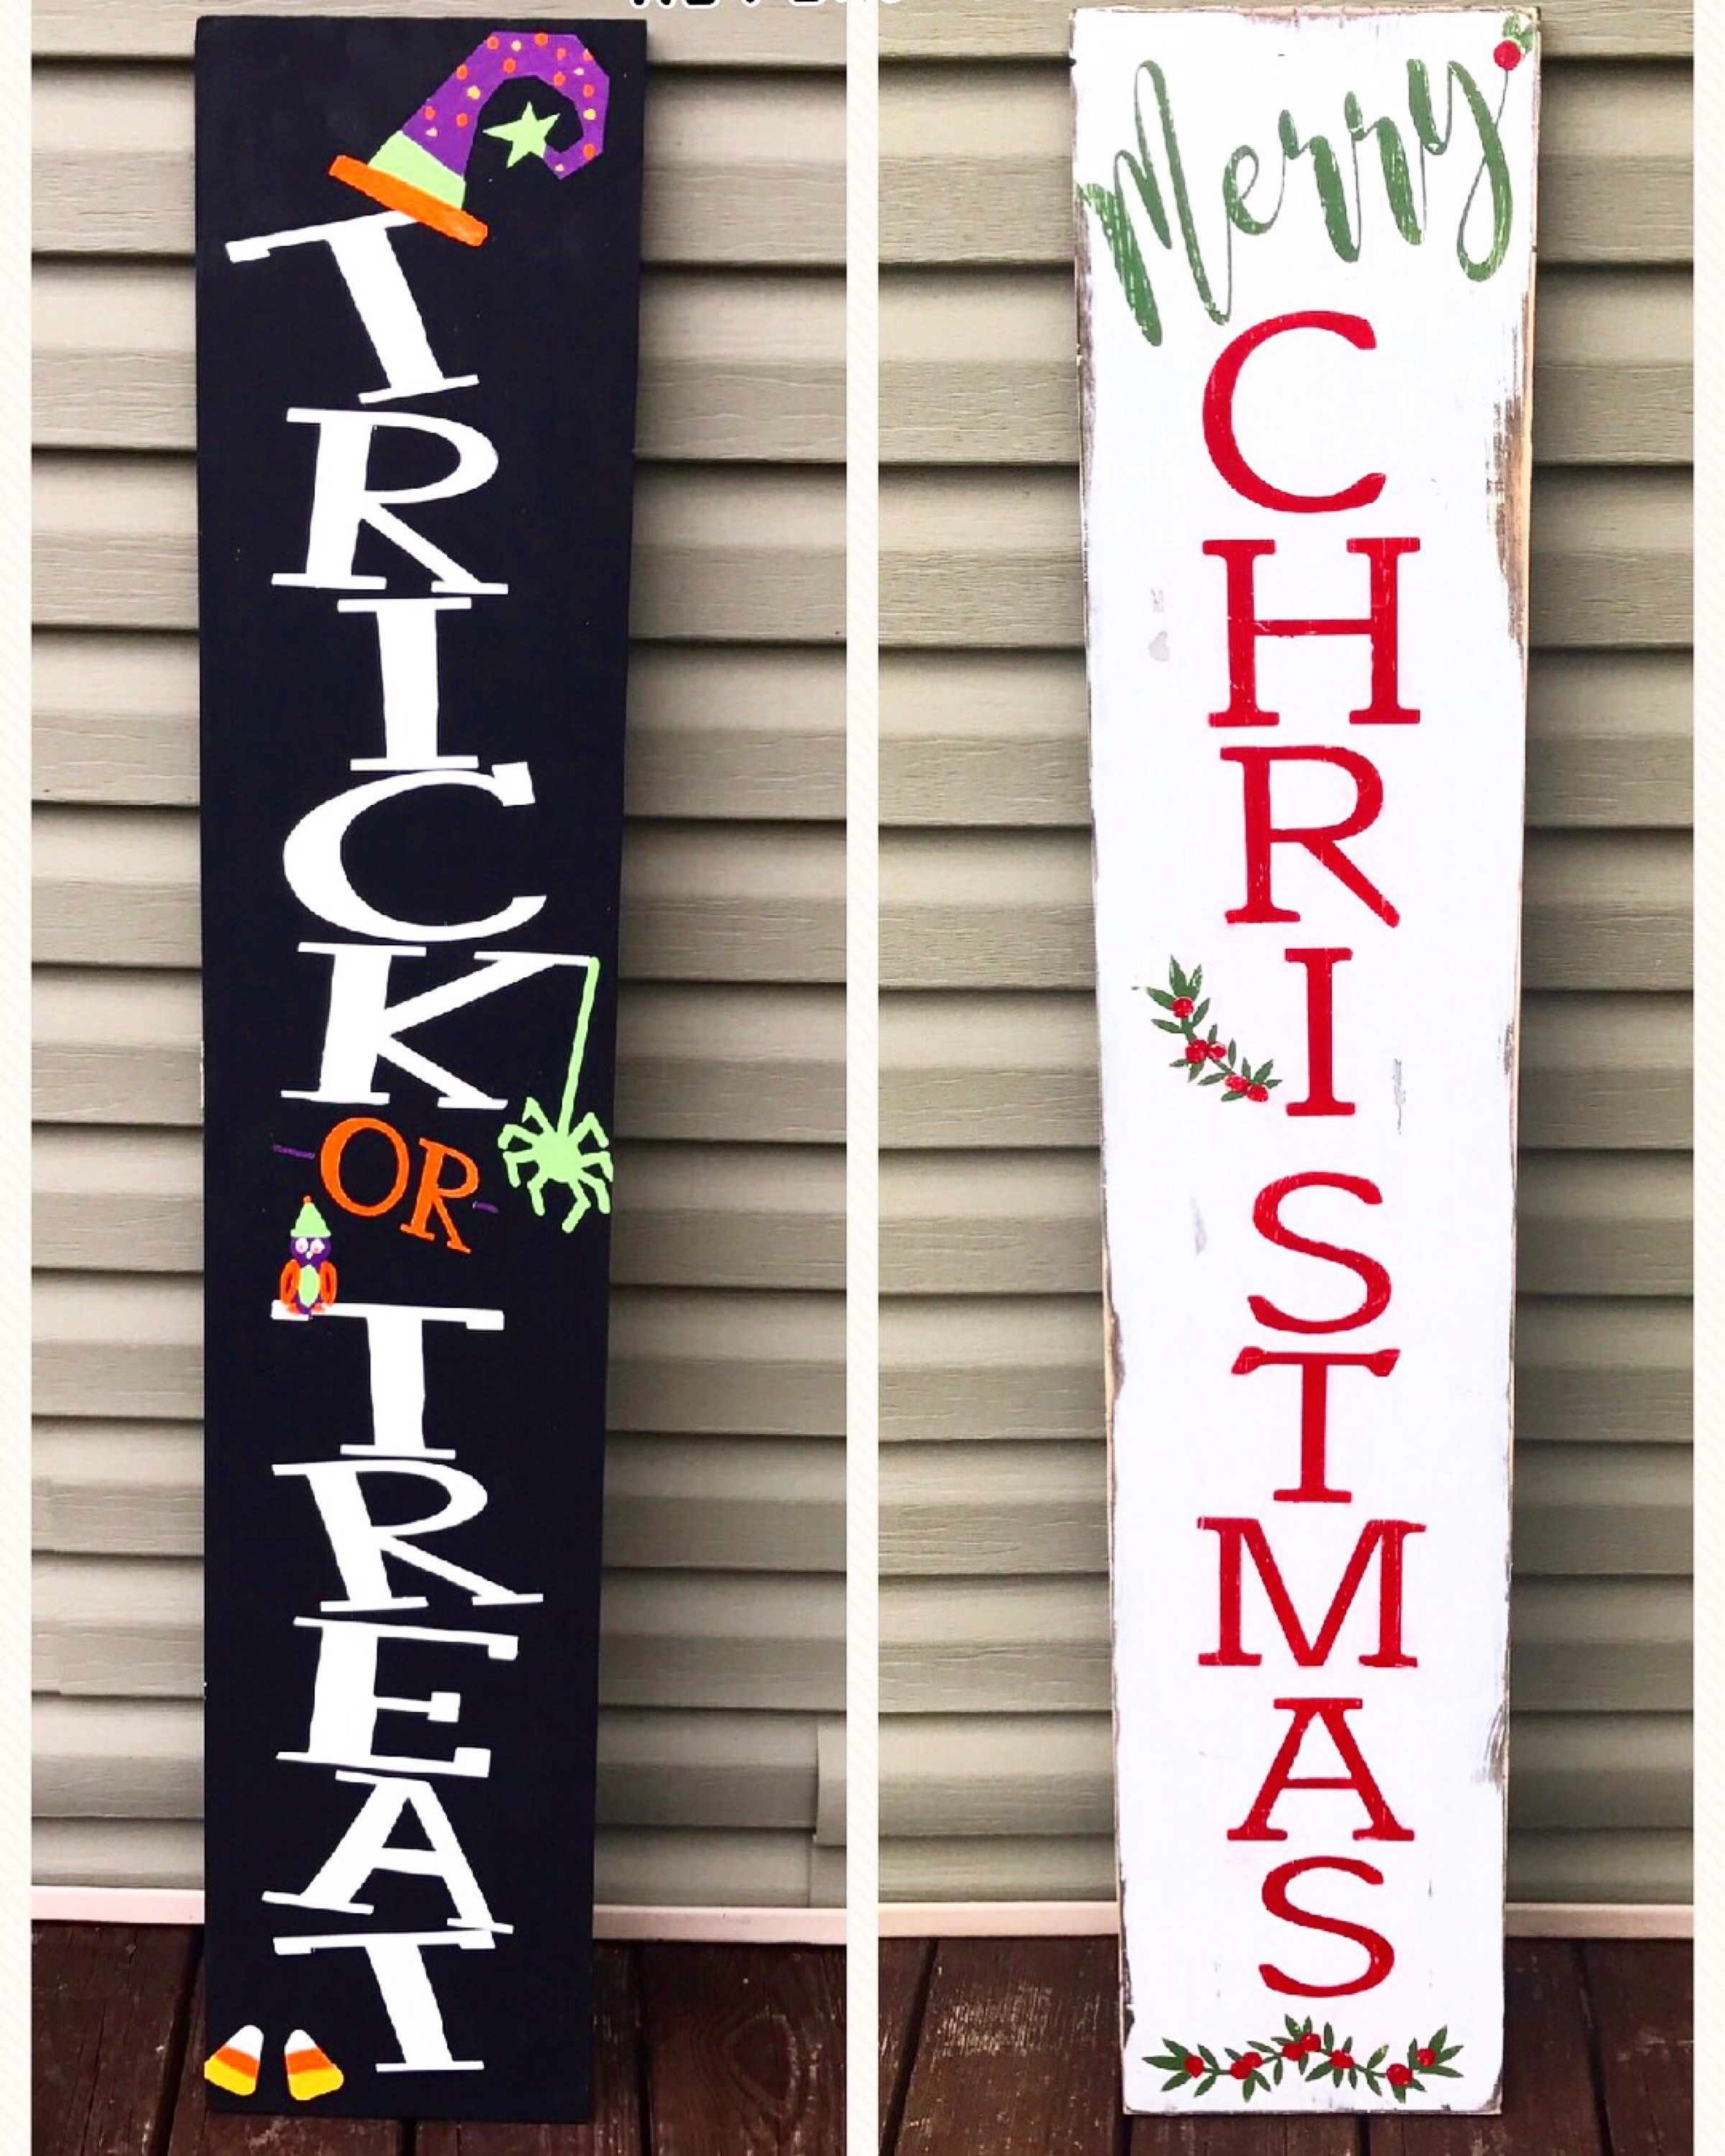 Harvest Sign On Barnwood For Fall Front Porch Decor: Reversible Porch Sign, Harvest Porch Sign, Merry Christmas